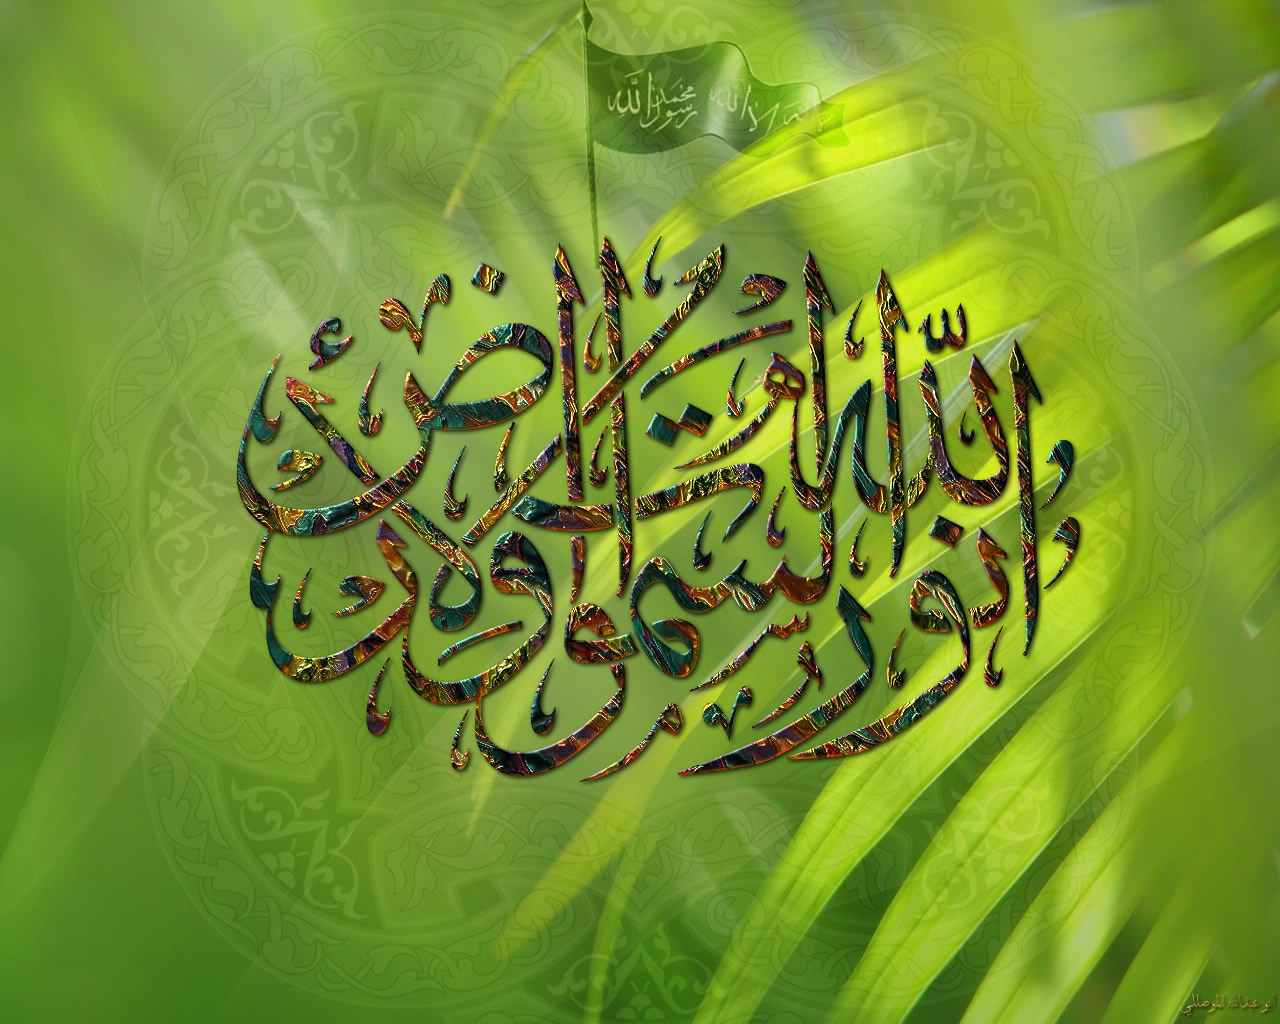 Islamic Wallpapers Islamic Wallpapers 30: [50+] Beautiful Islamic HD Wallpapers On WallpaperSafari